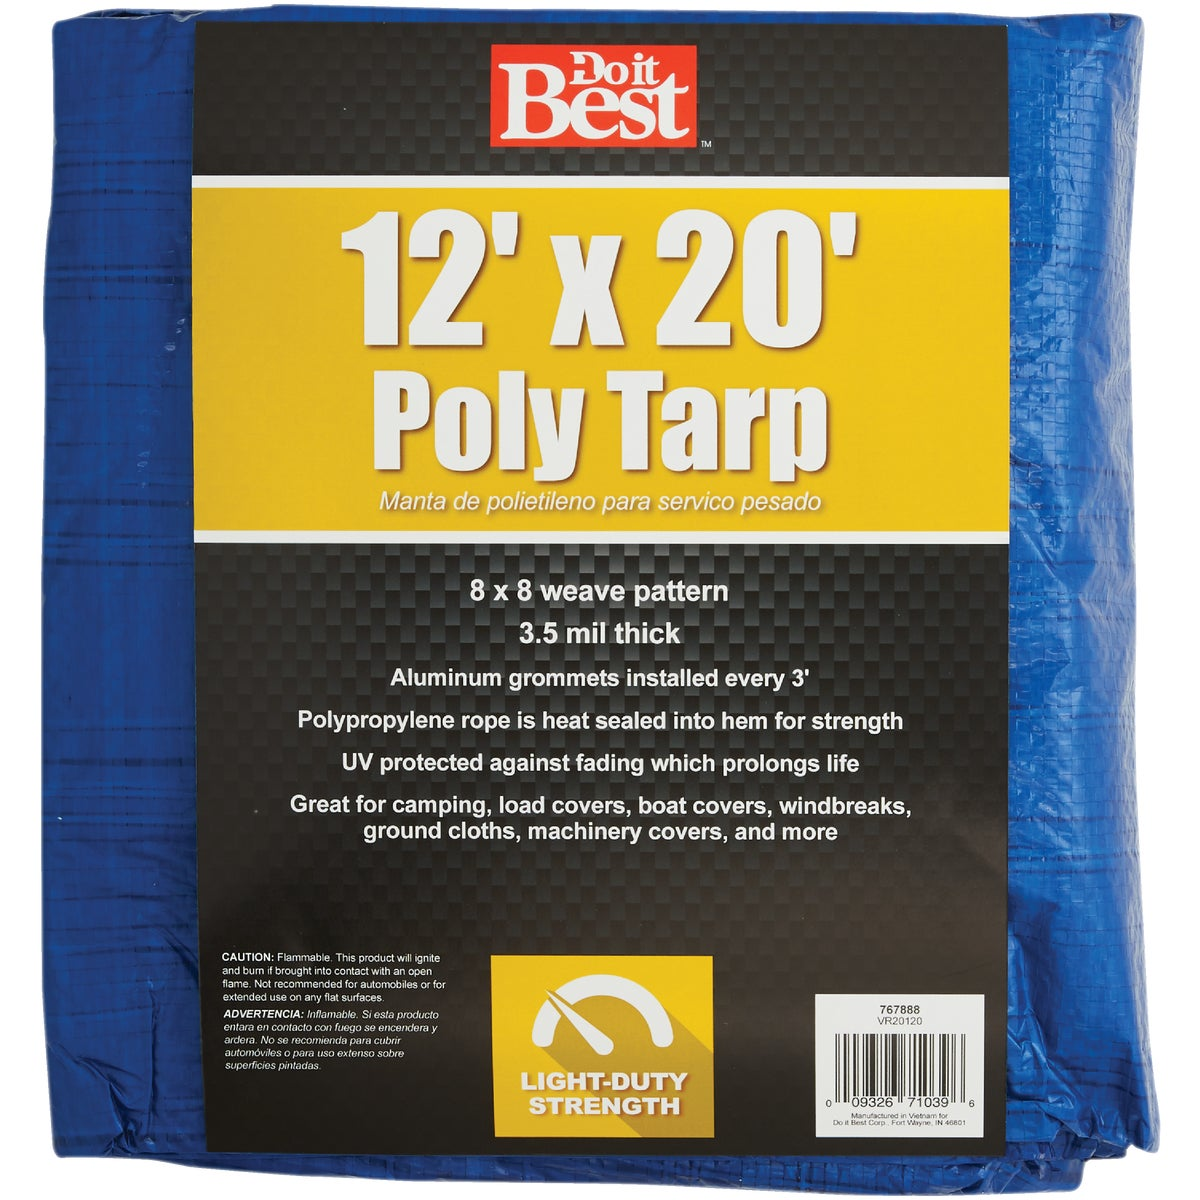 12X20 BLUE AP TARP - 767888 by Do it Best